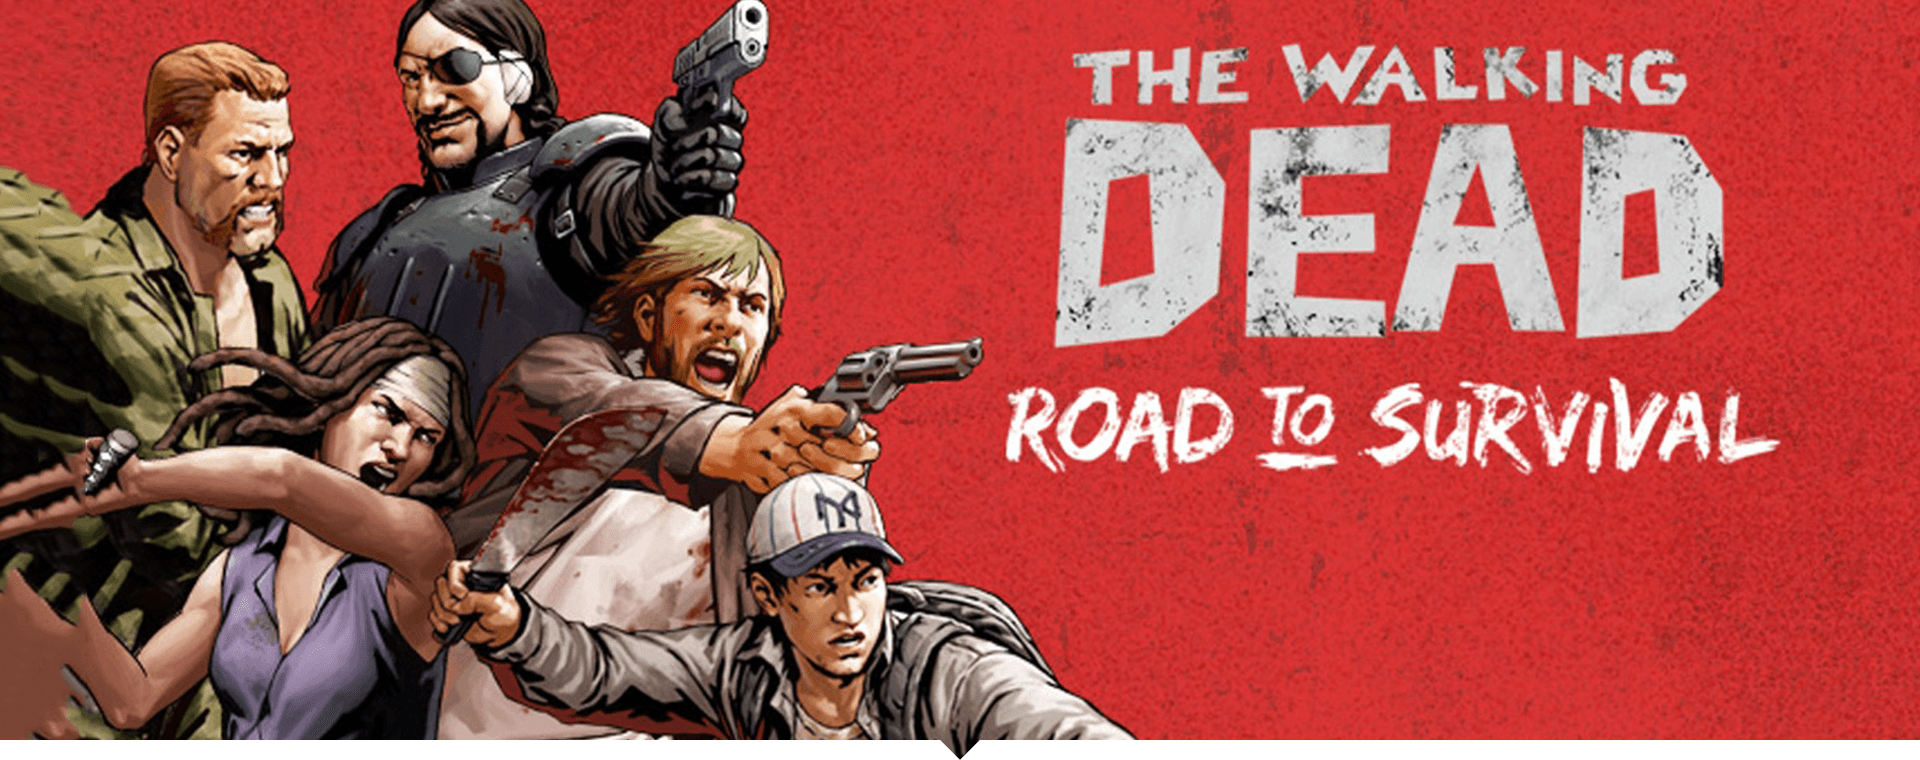 The Walking Dead Road to Survival